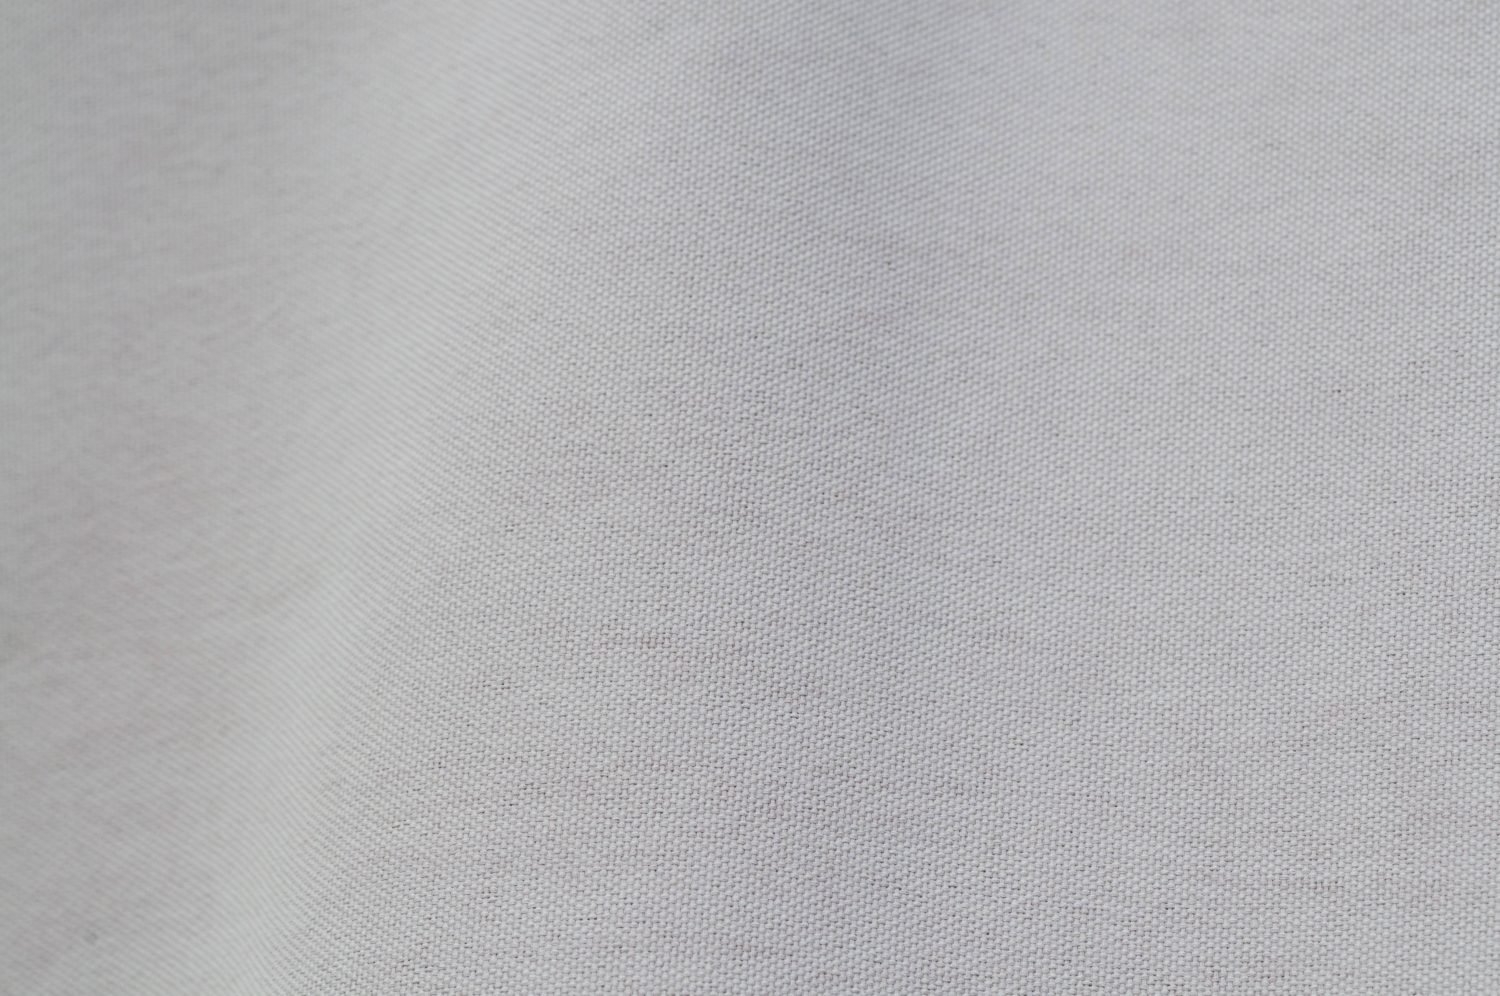 Detailed white strong fabric texture